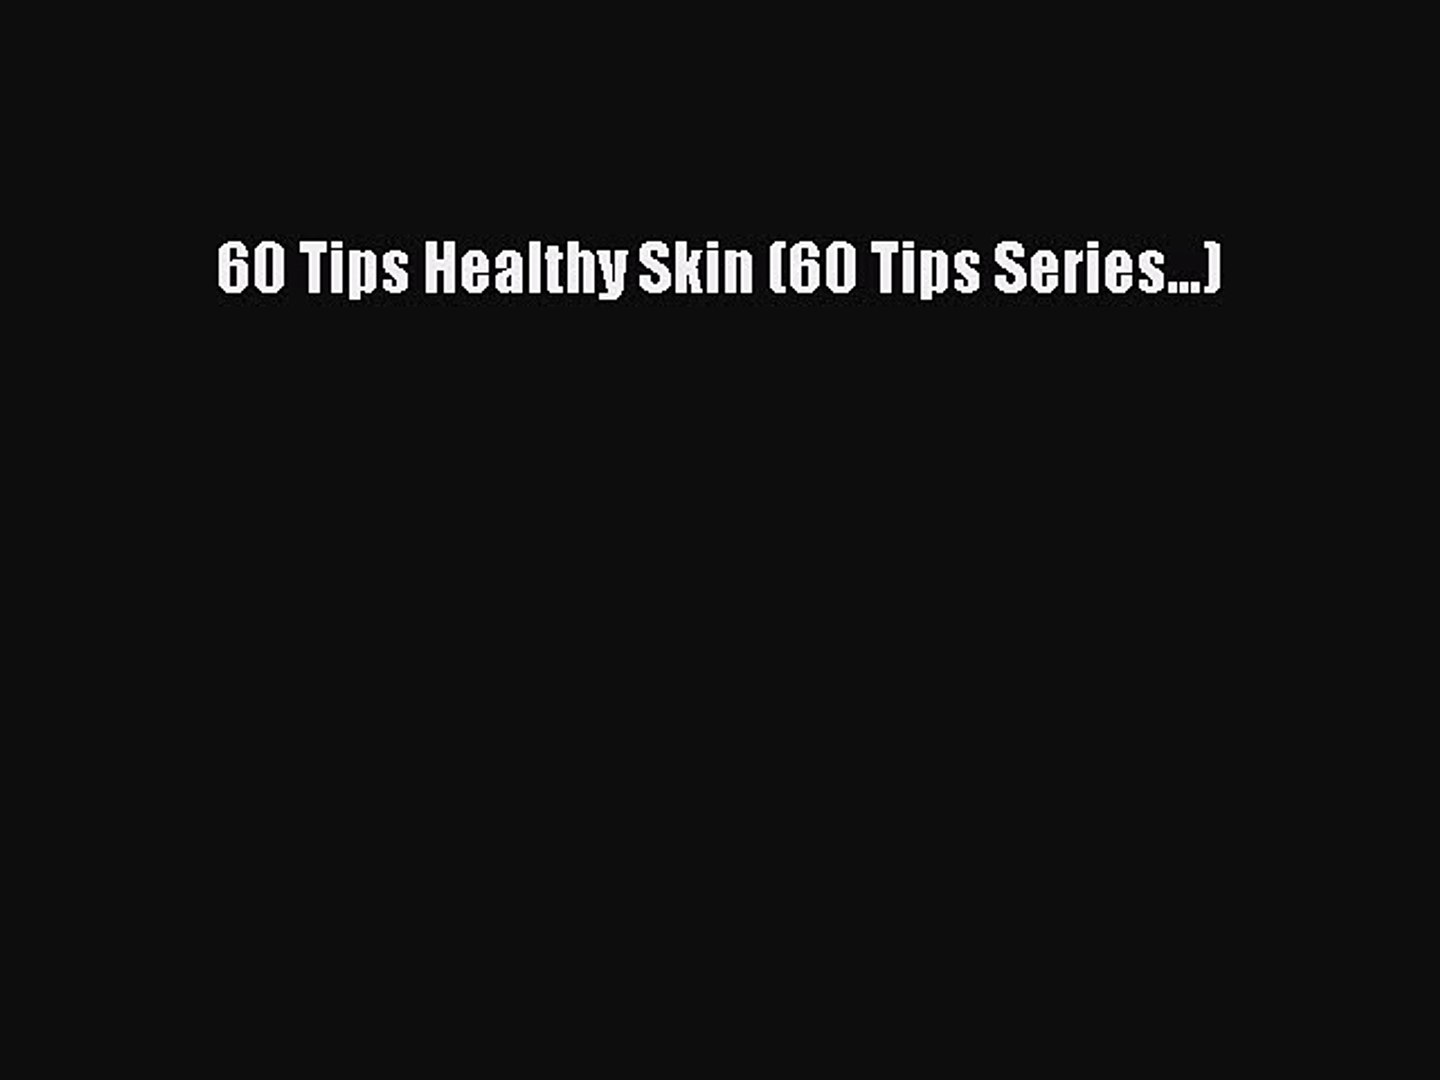 Read 60 Tips Healthy Skin (60 Tips Series...) PDF Free